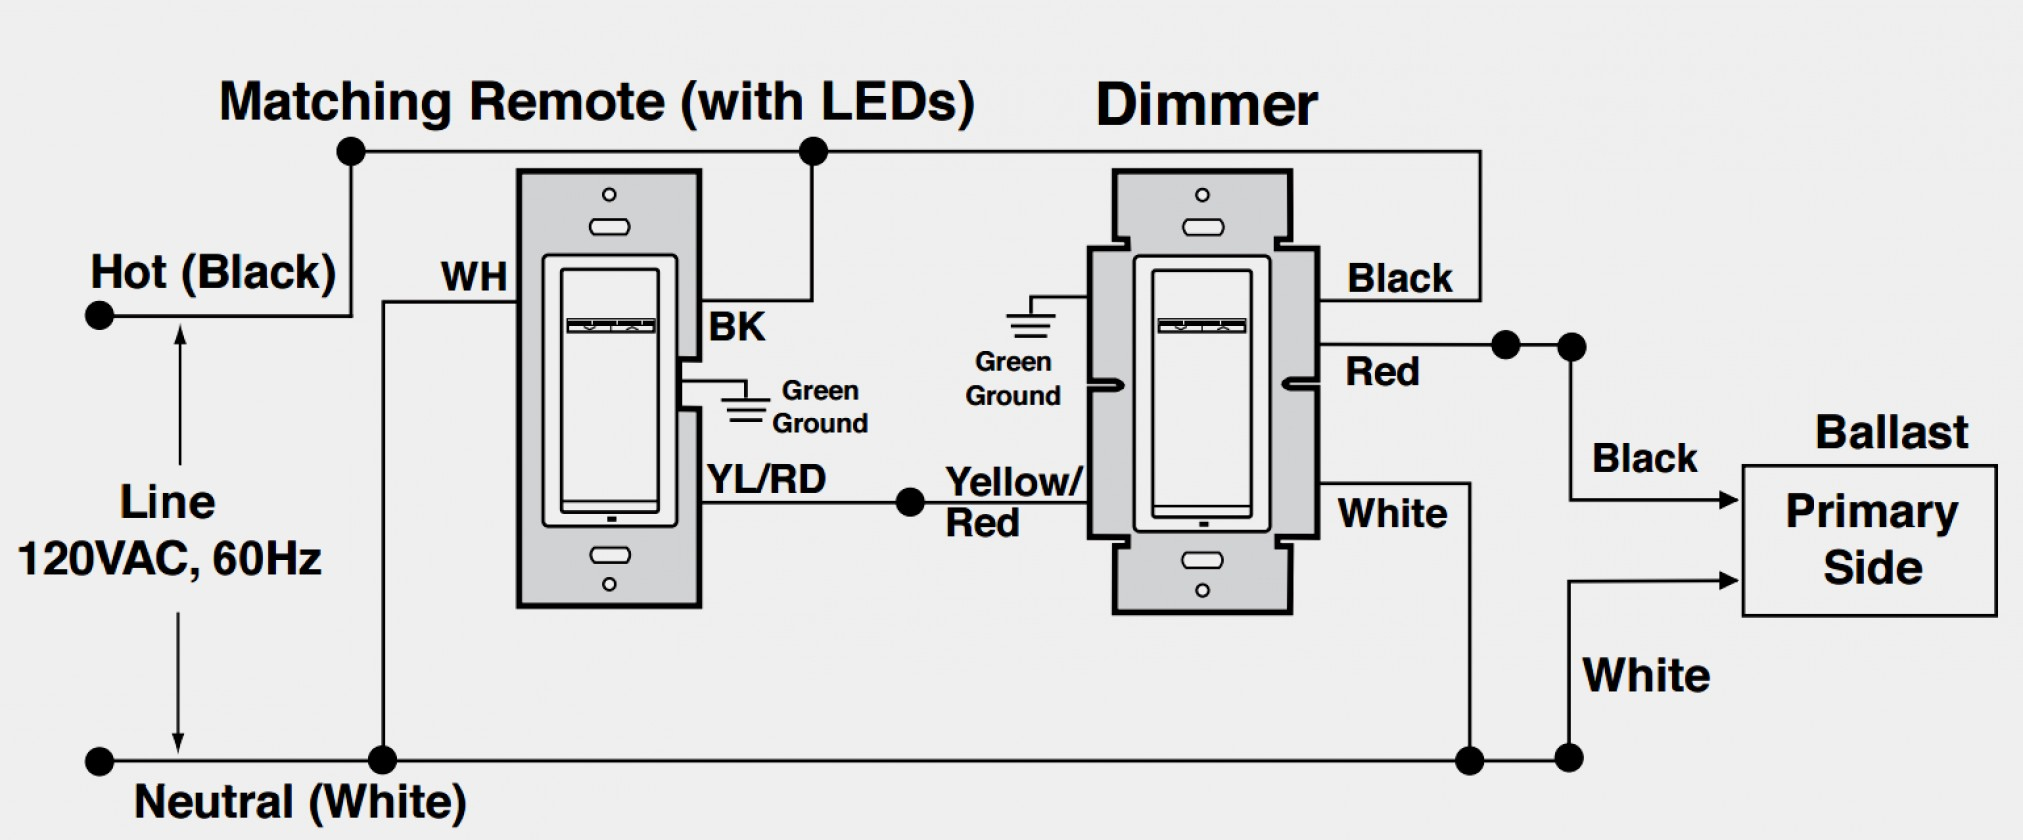 Lutron Led Dimmer Switch Wiring Diagram - Wiring Diagrams - Dimming Switch Wiring Diagram